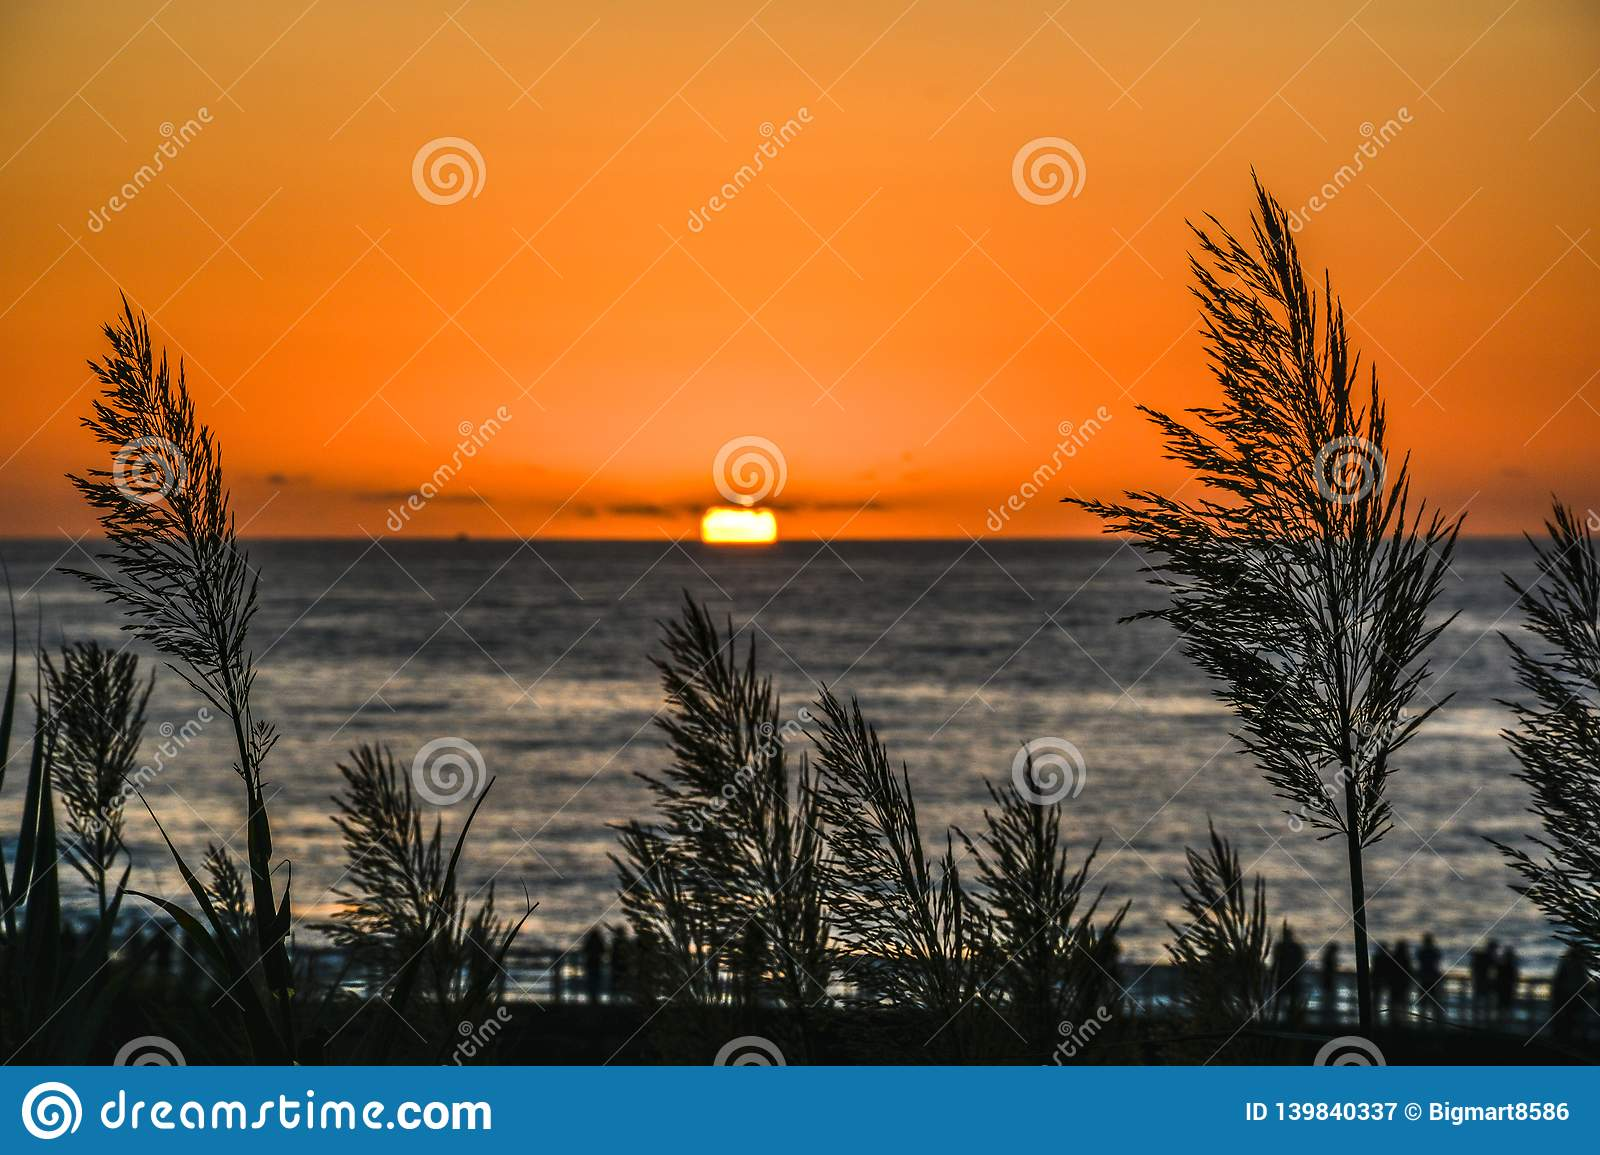 Scenic Sunset With Beautiful Tall Grass In Front And People In Pier Stock Image Image Of California Scenic 139840337